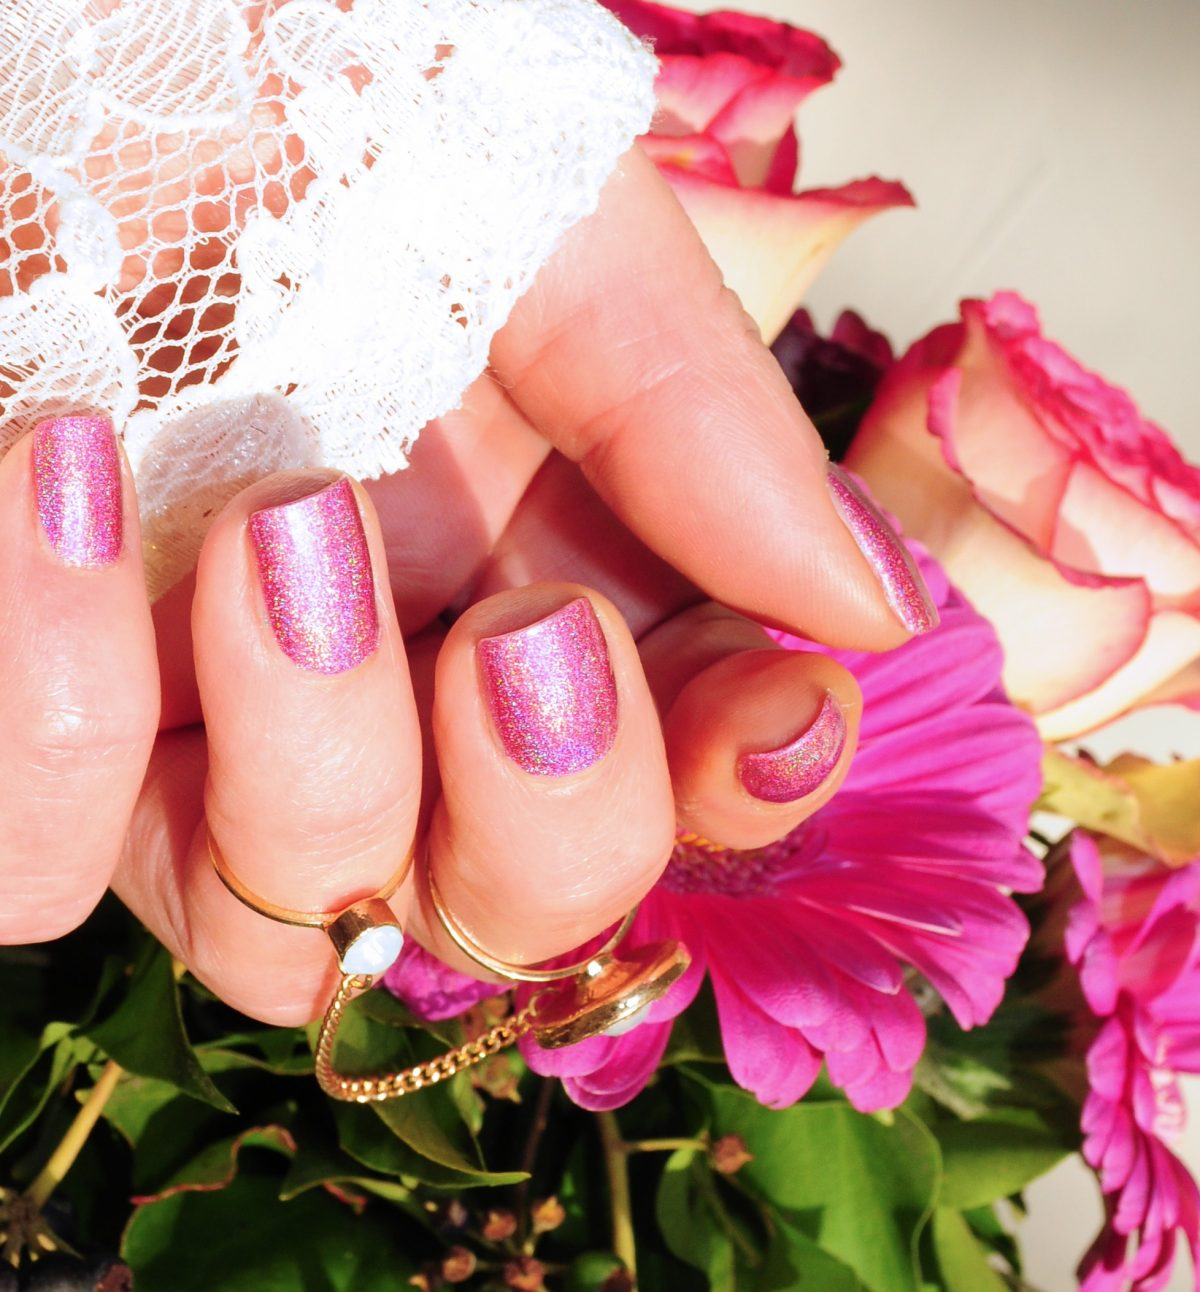 These are sparkly pink nails and a bouquet of pink and white flowers.